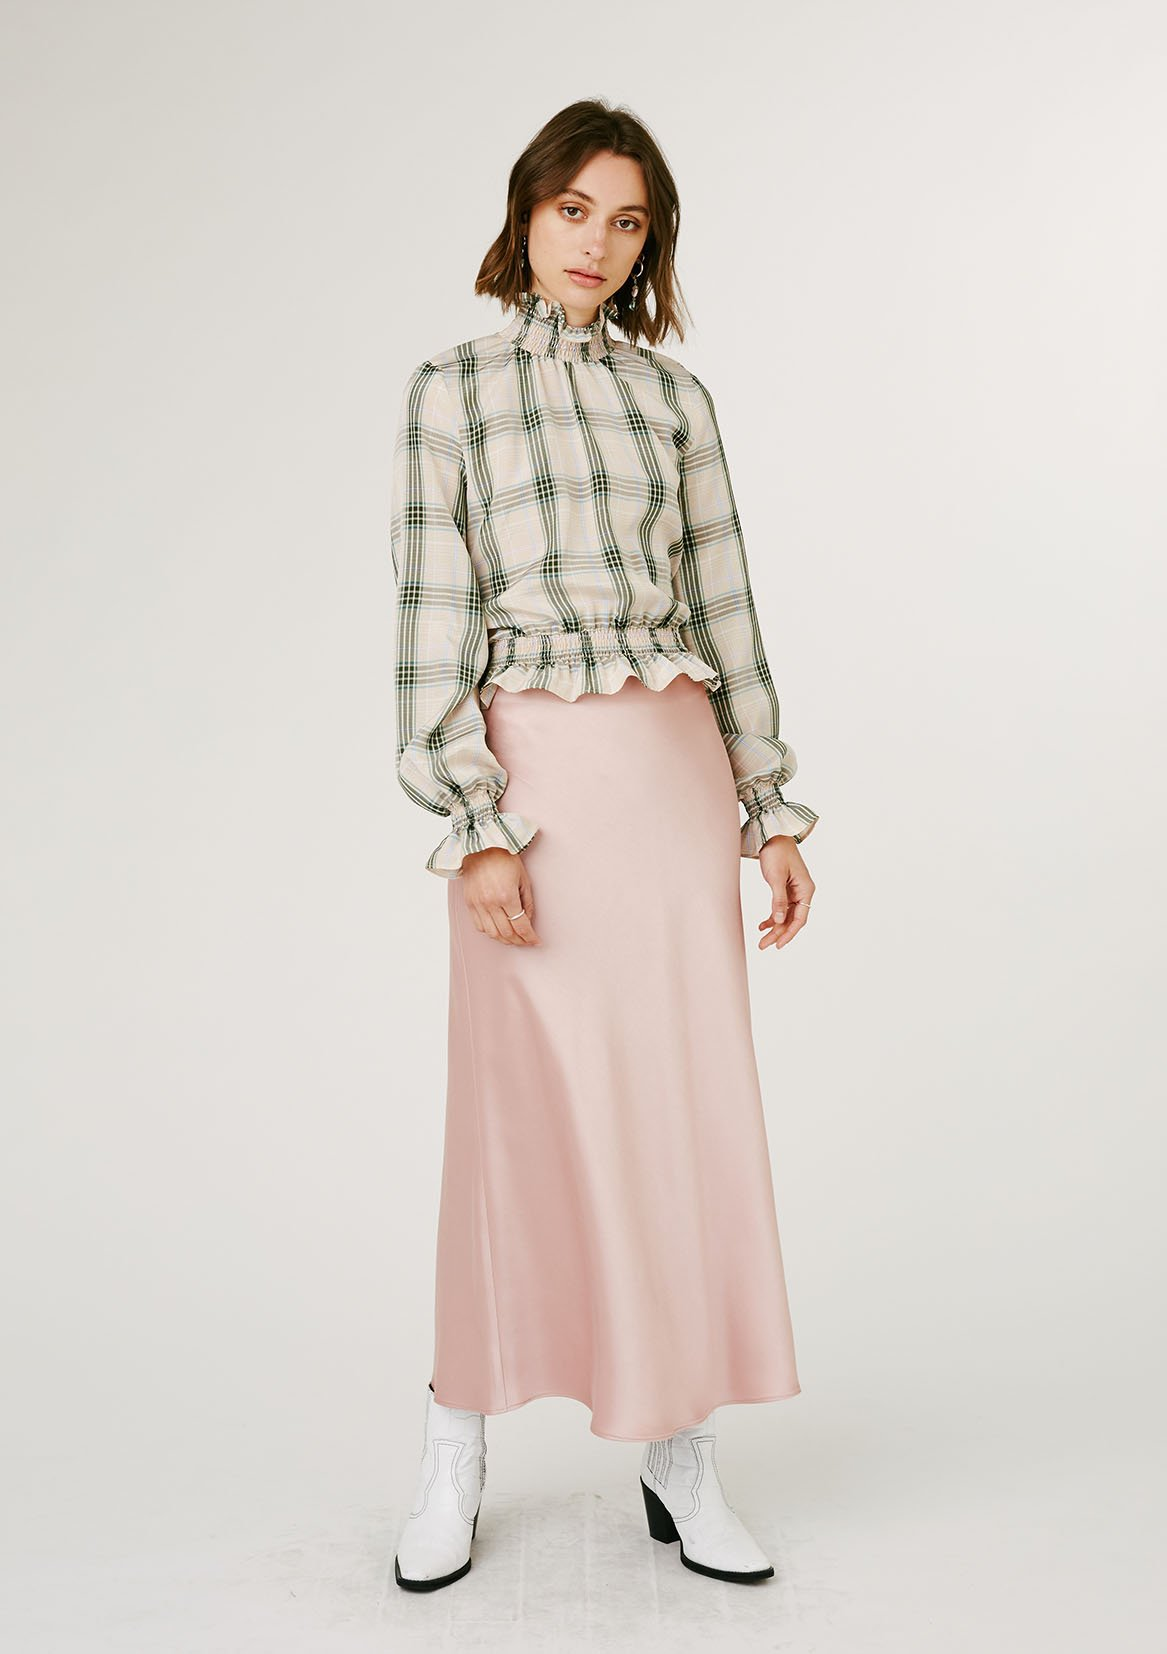 Jillian Boustred Flutter Blouse // Green Check